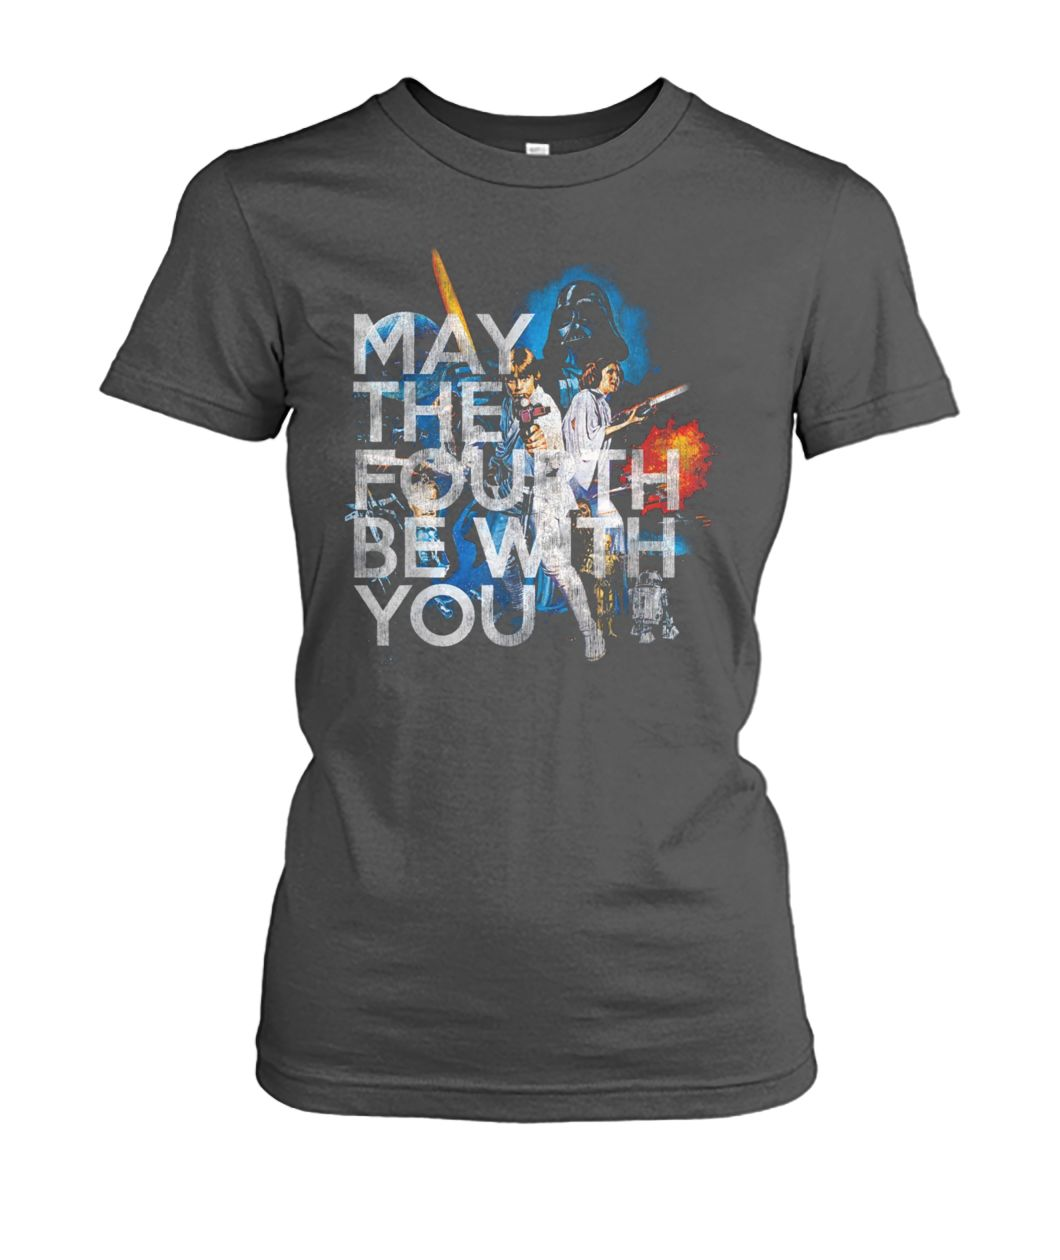 May the fourth be with you star wars day women's crew tee